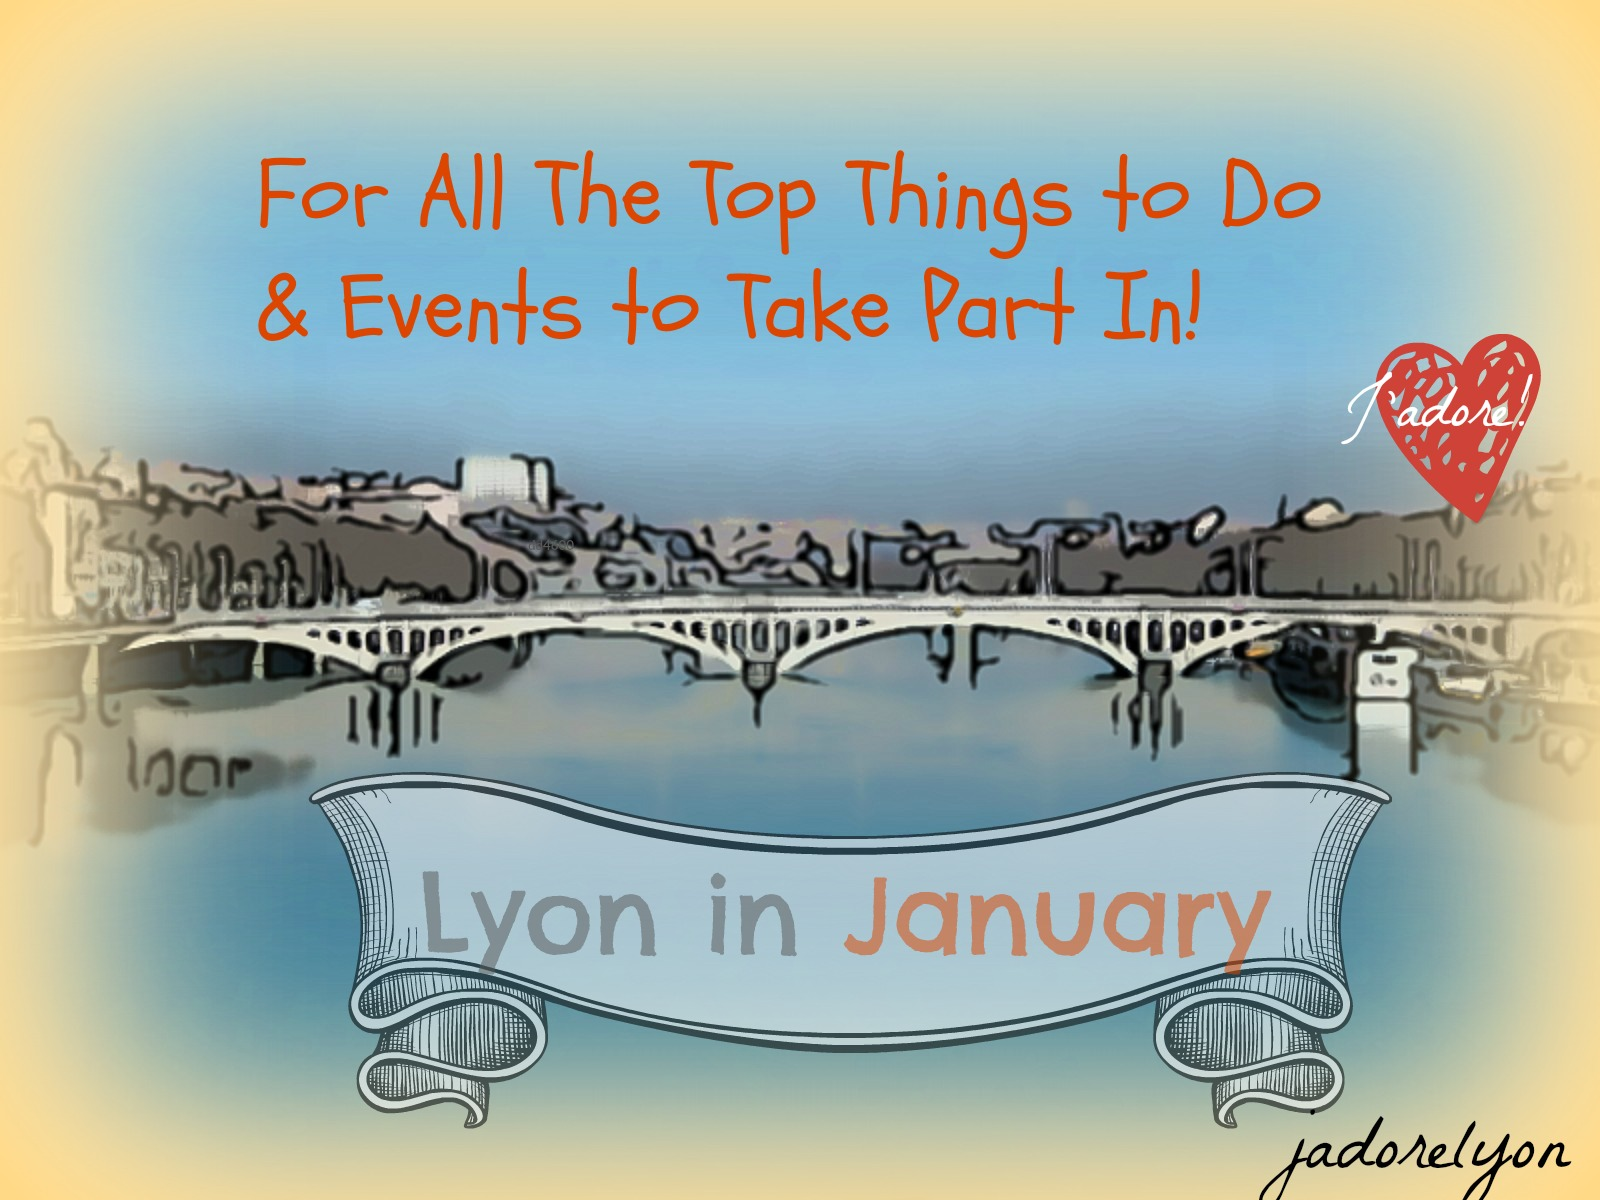 Salon Camping Car Lyon Lyon In January For All The Top Things To Do And Events To Take Part